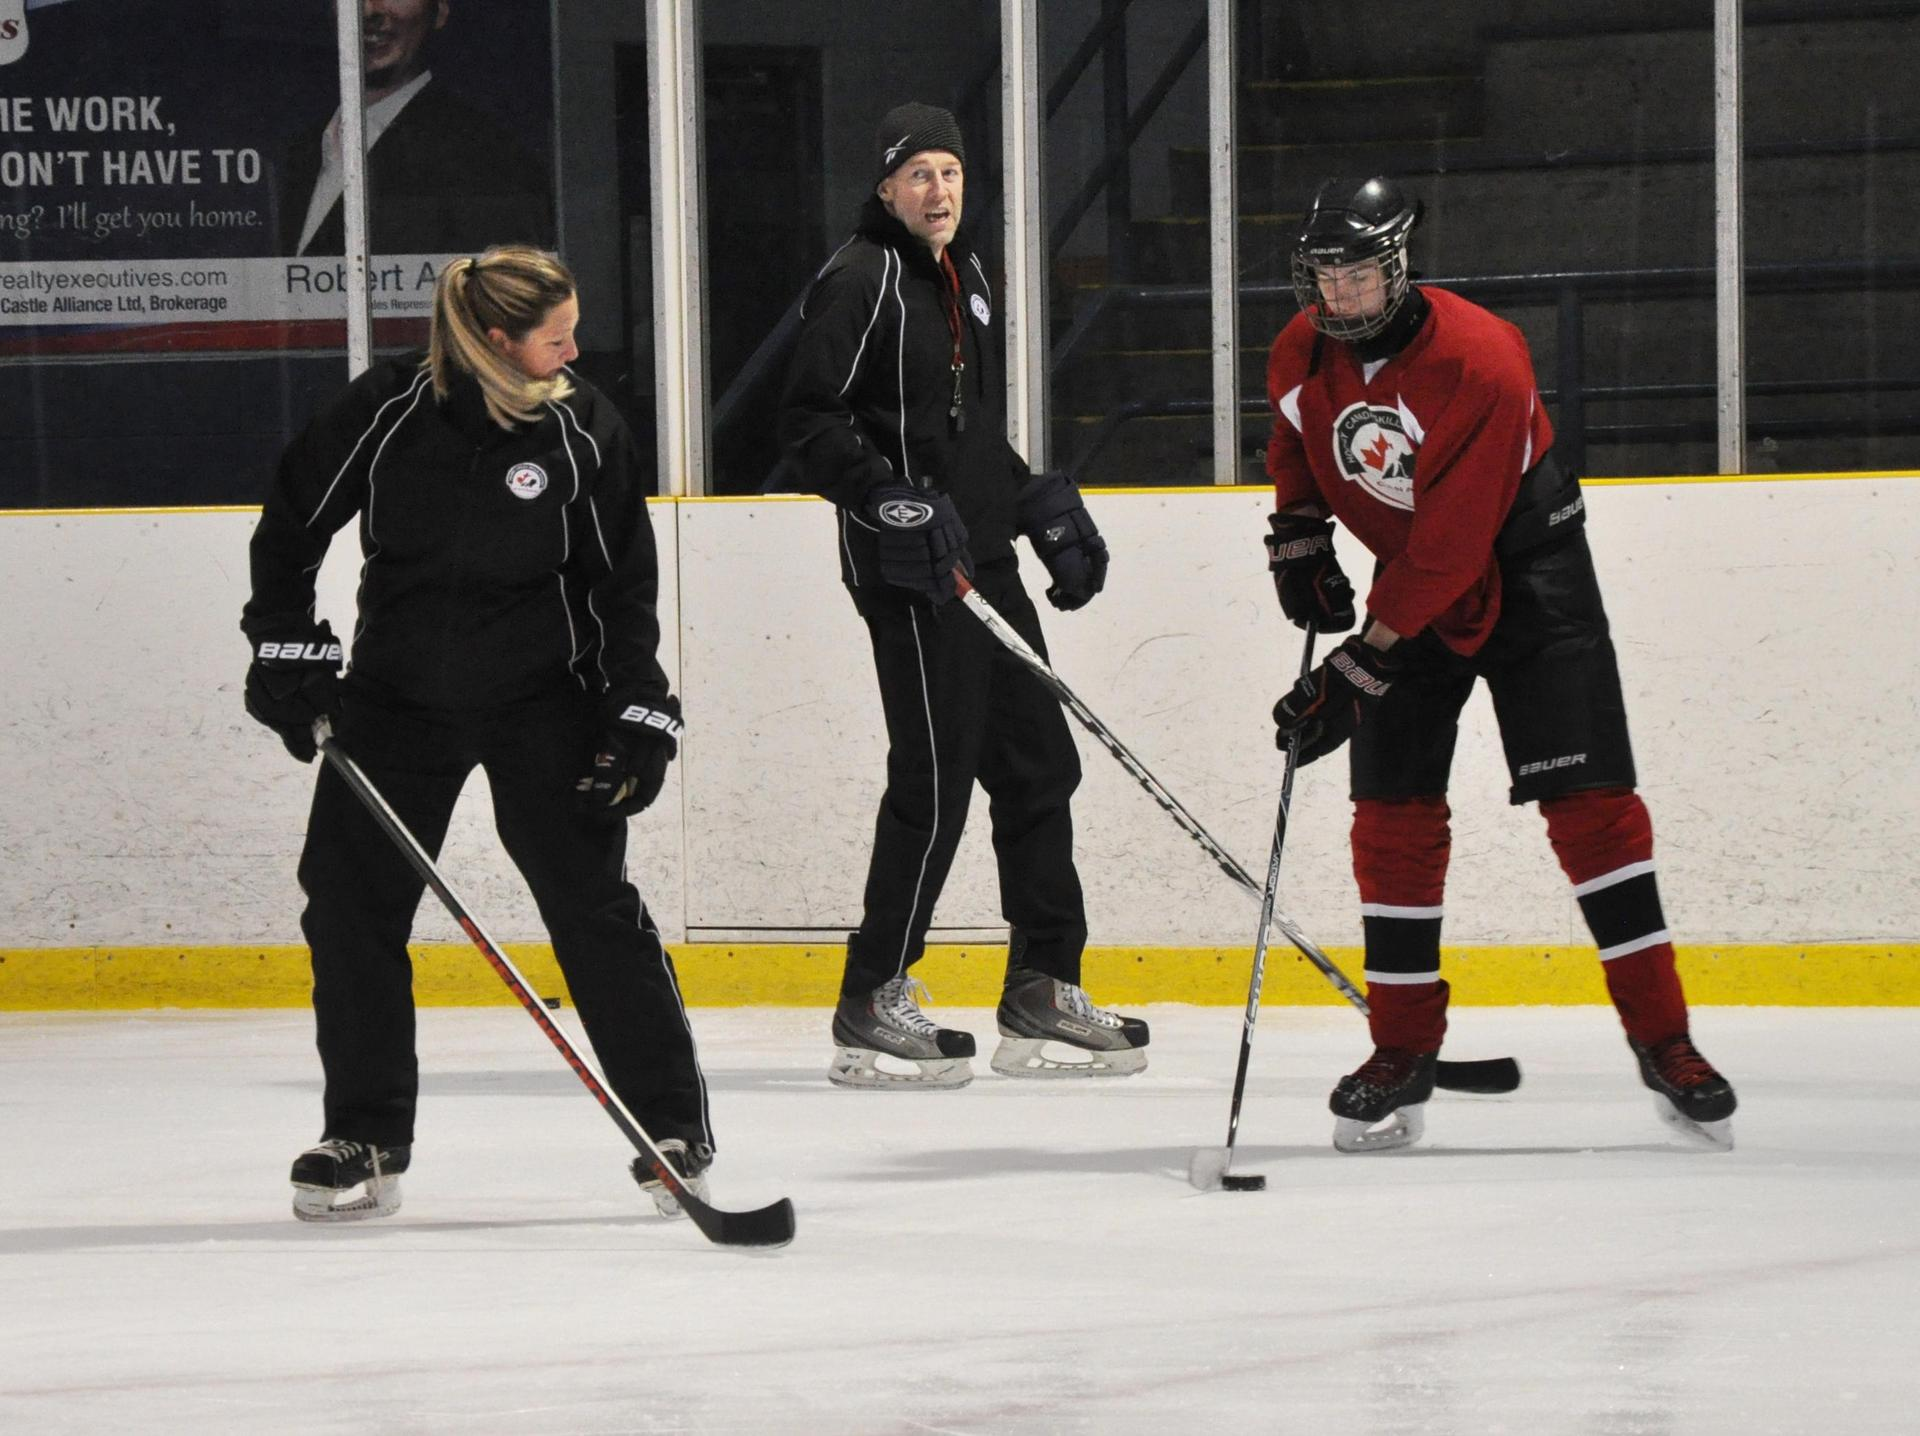 coaches and students on ice